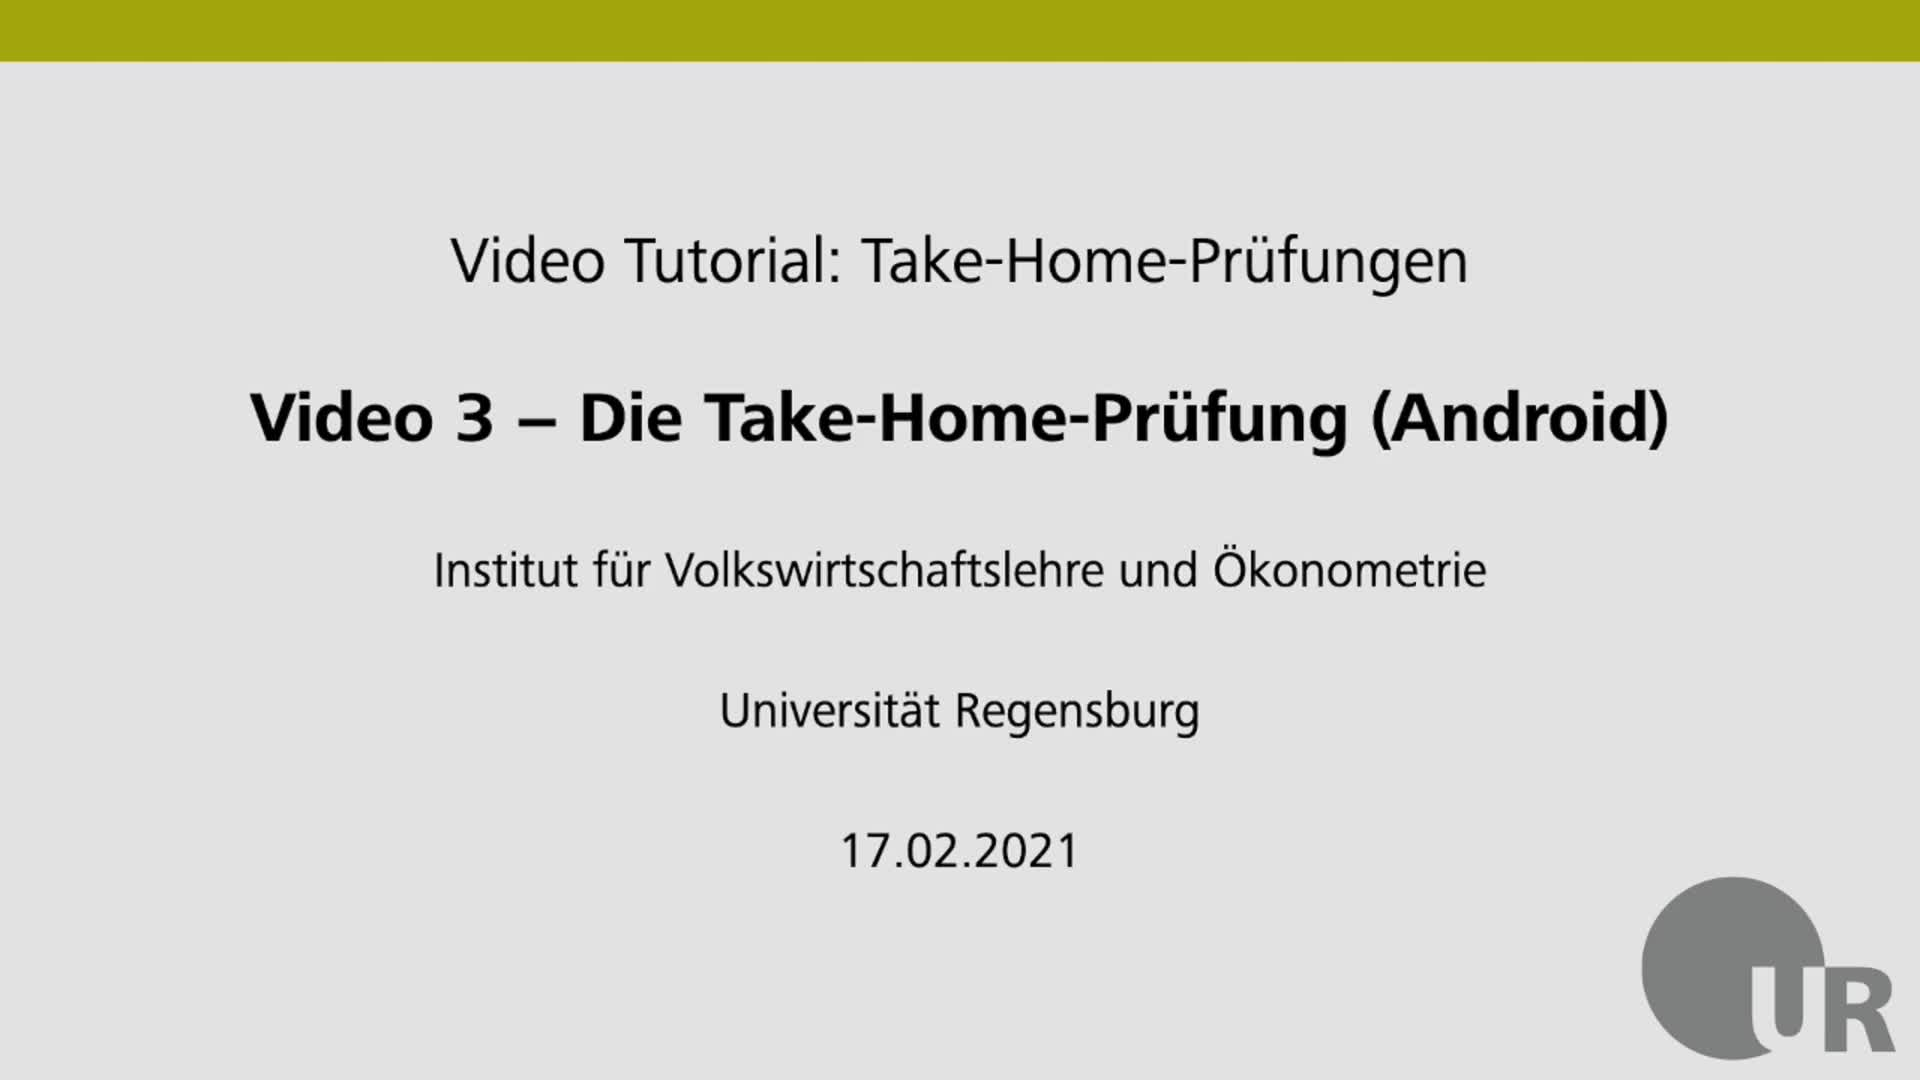 Video 3 - Die Take-Home-Prüfung (Android)